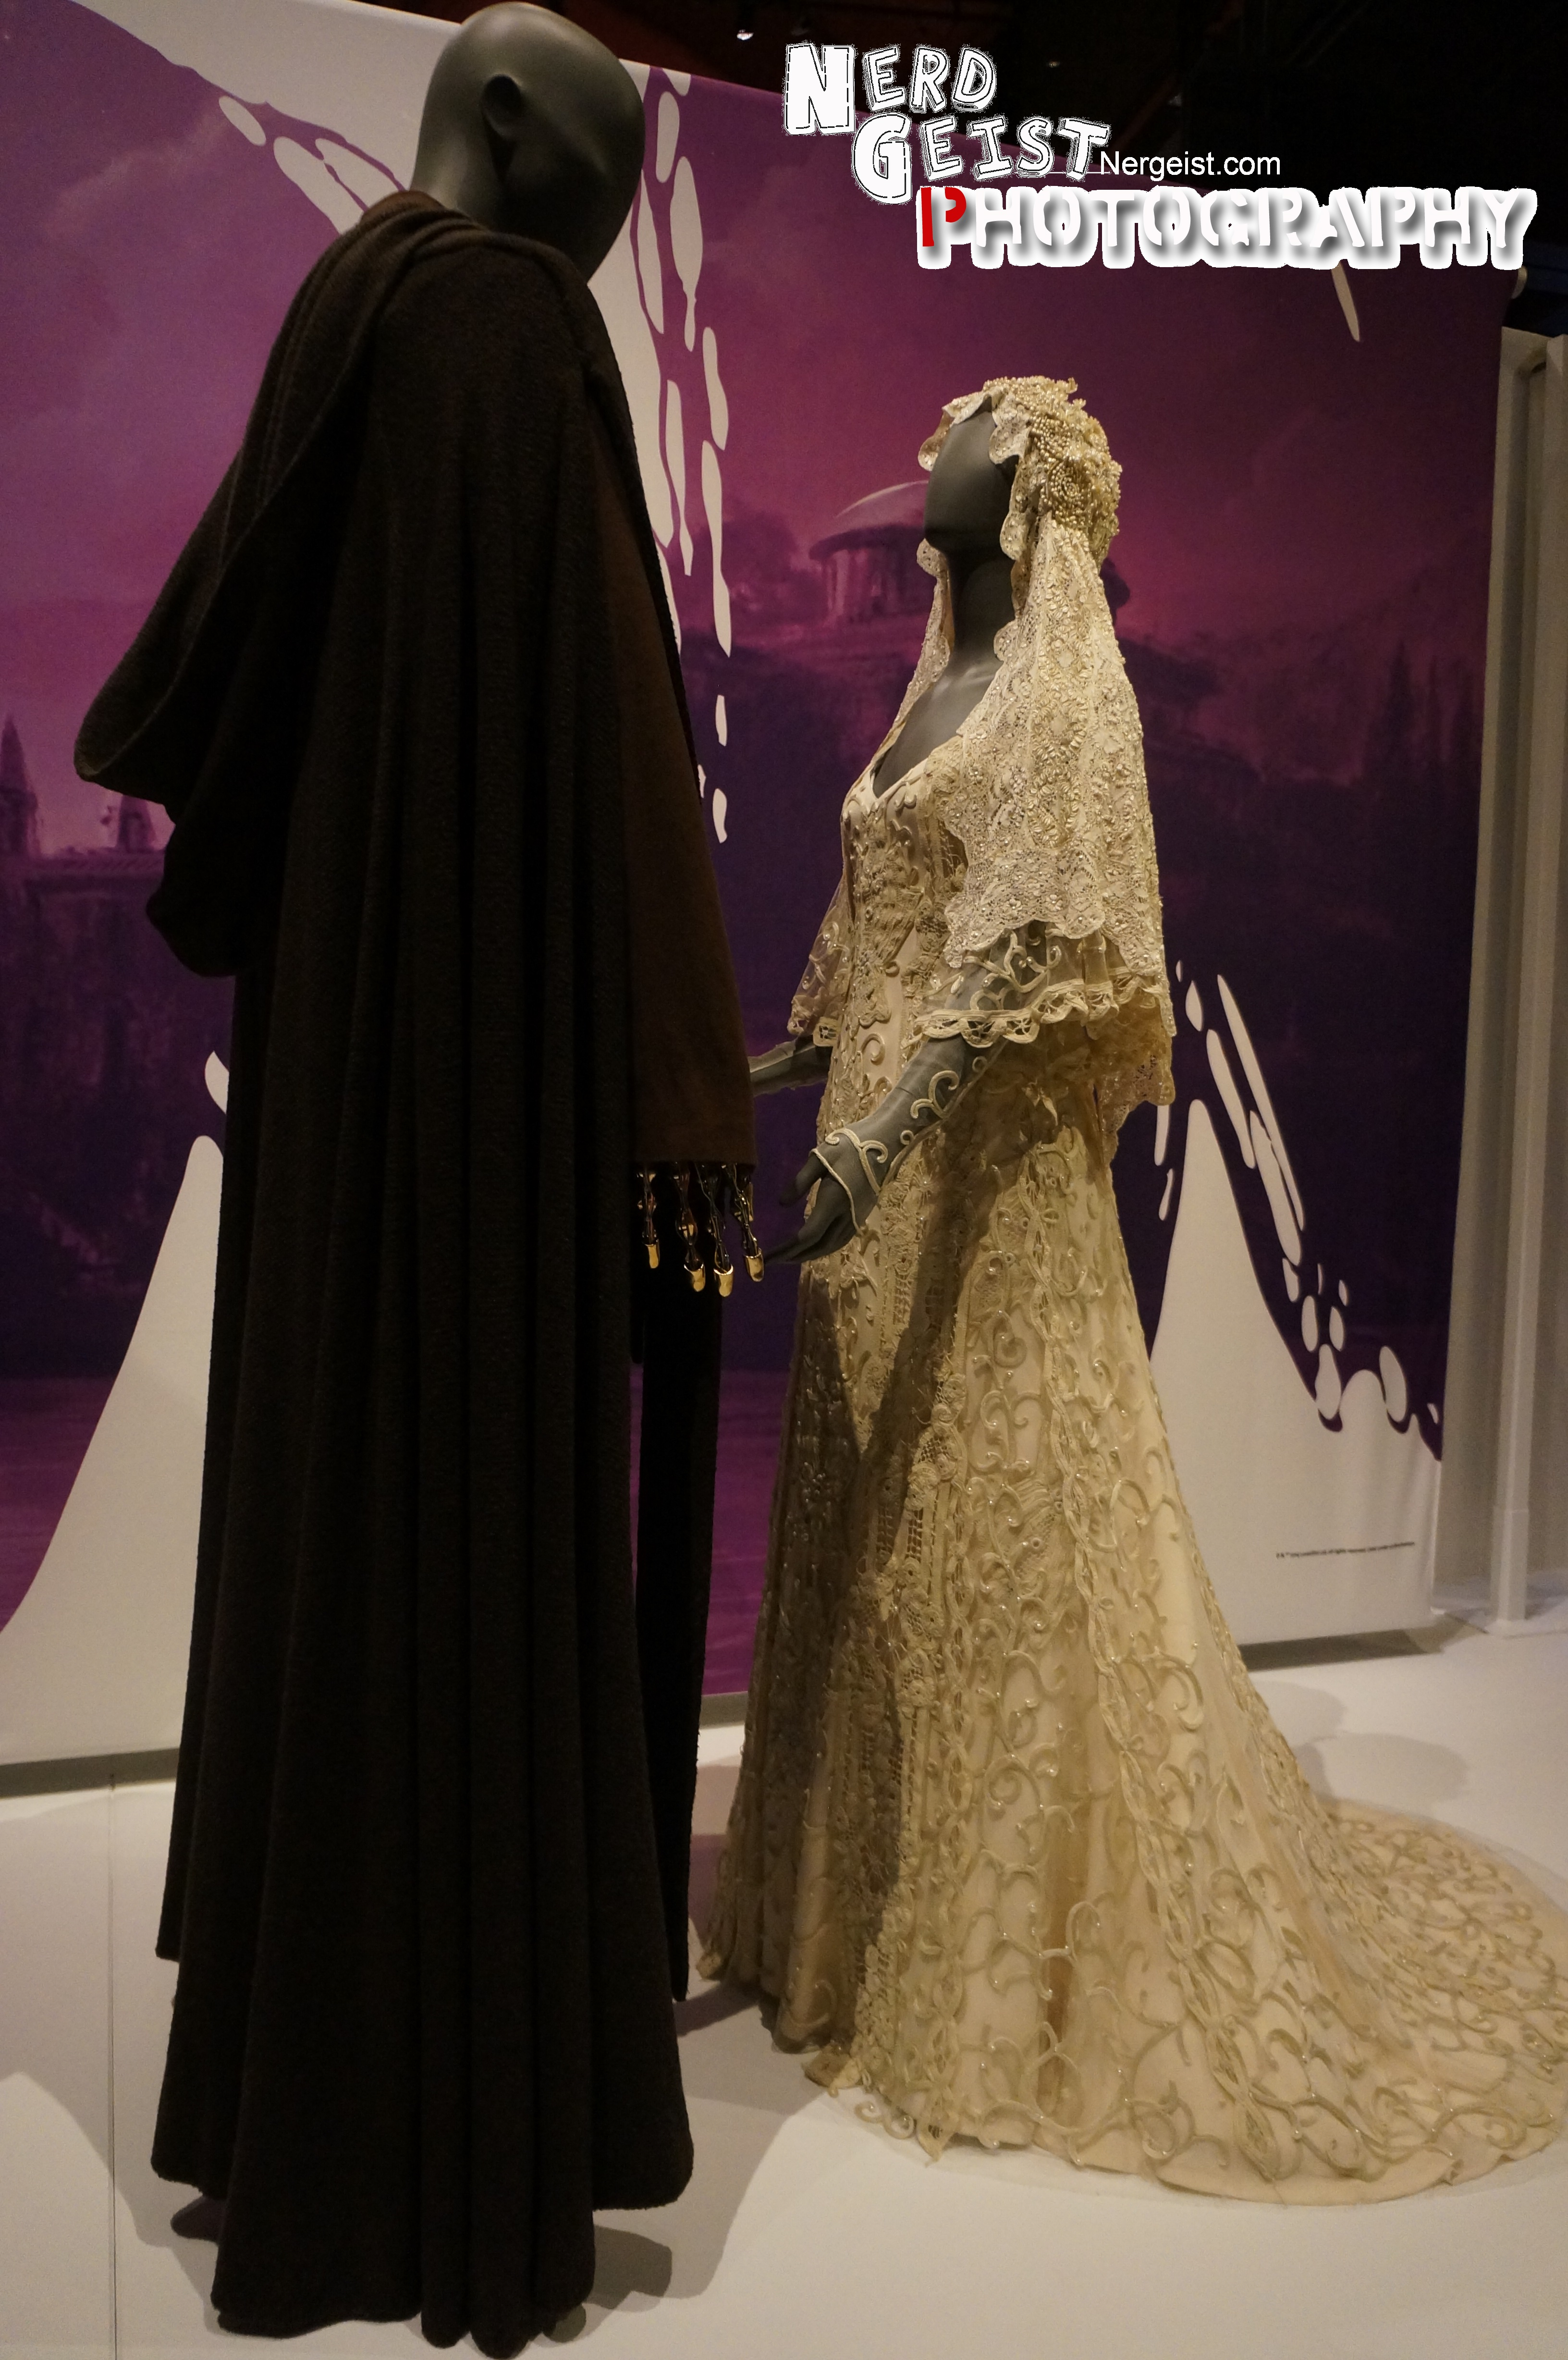 Star Wars And The Power Of Costume At Emp Museum Nerdgeist